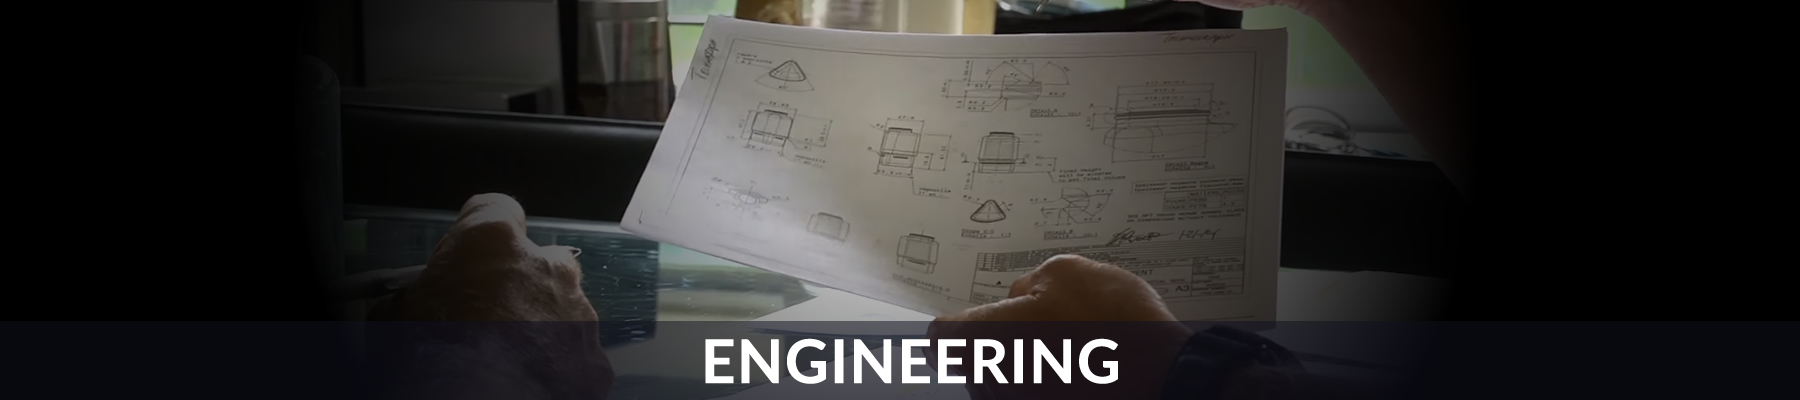 Engineering 1